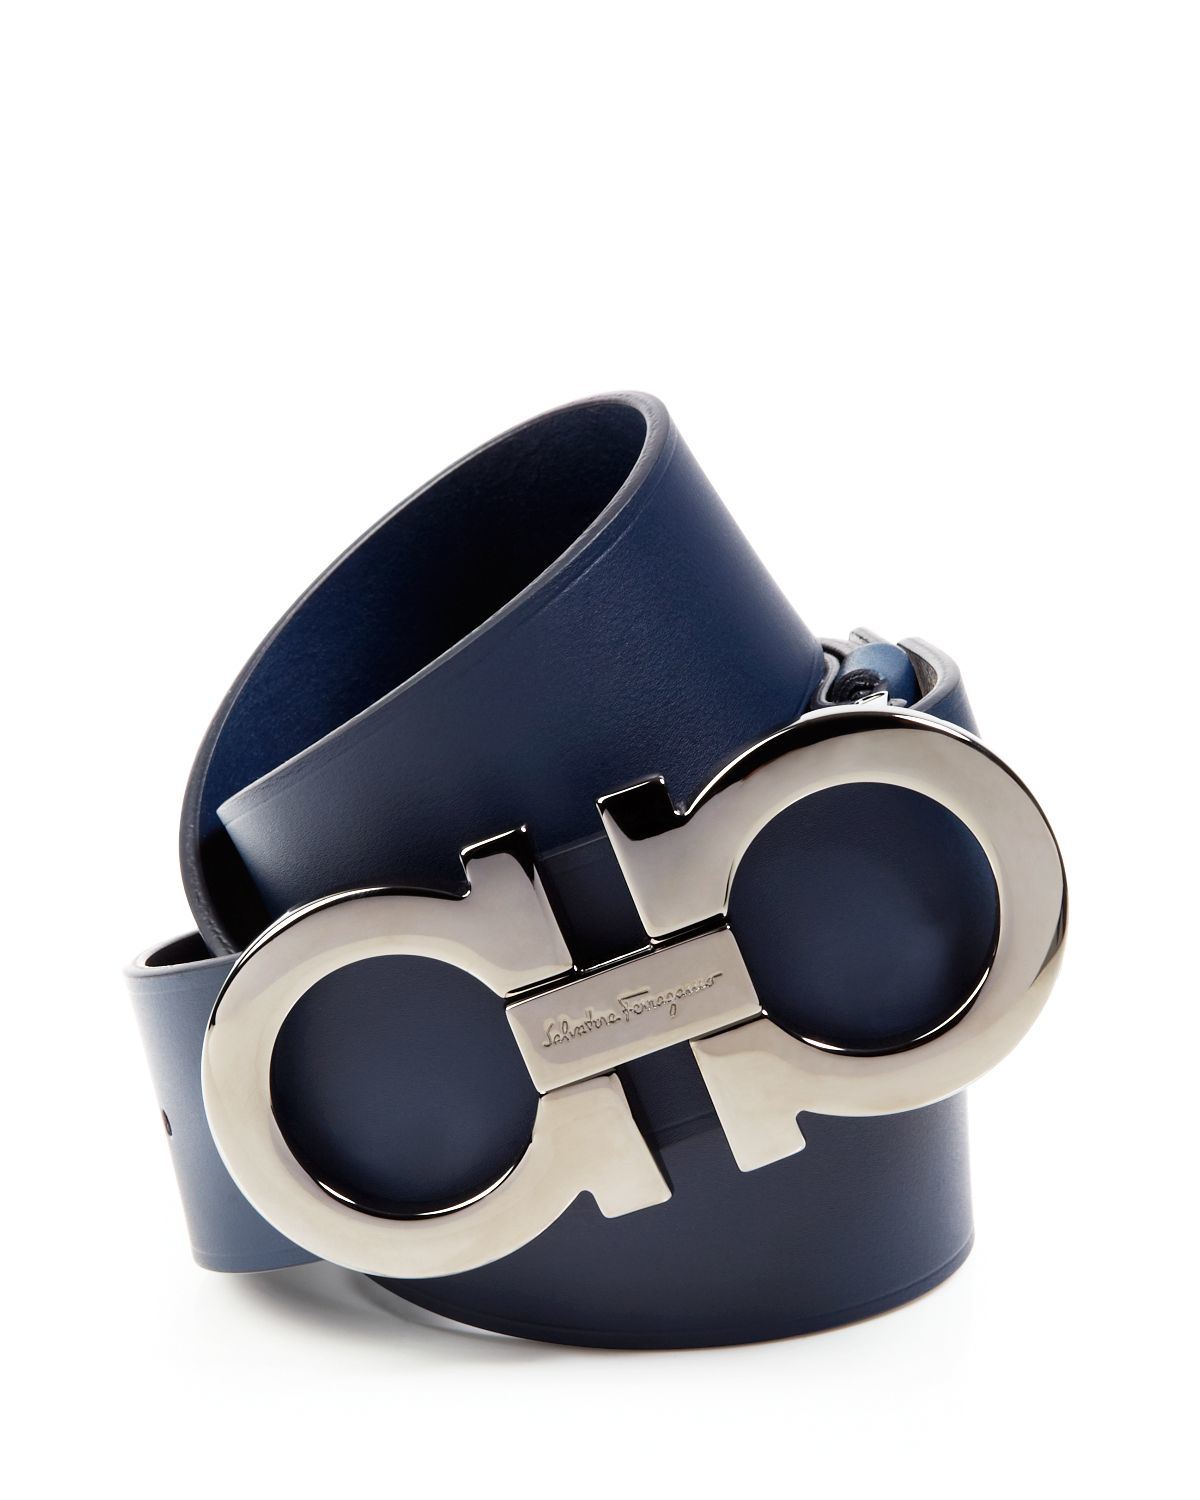 Ferragamo Leather Belt With Gancini Buckle In Blue For Men Lyst